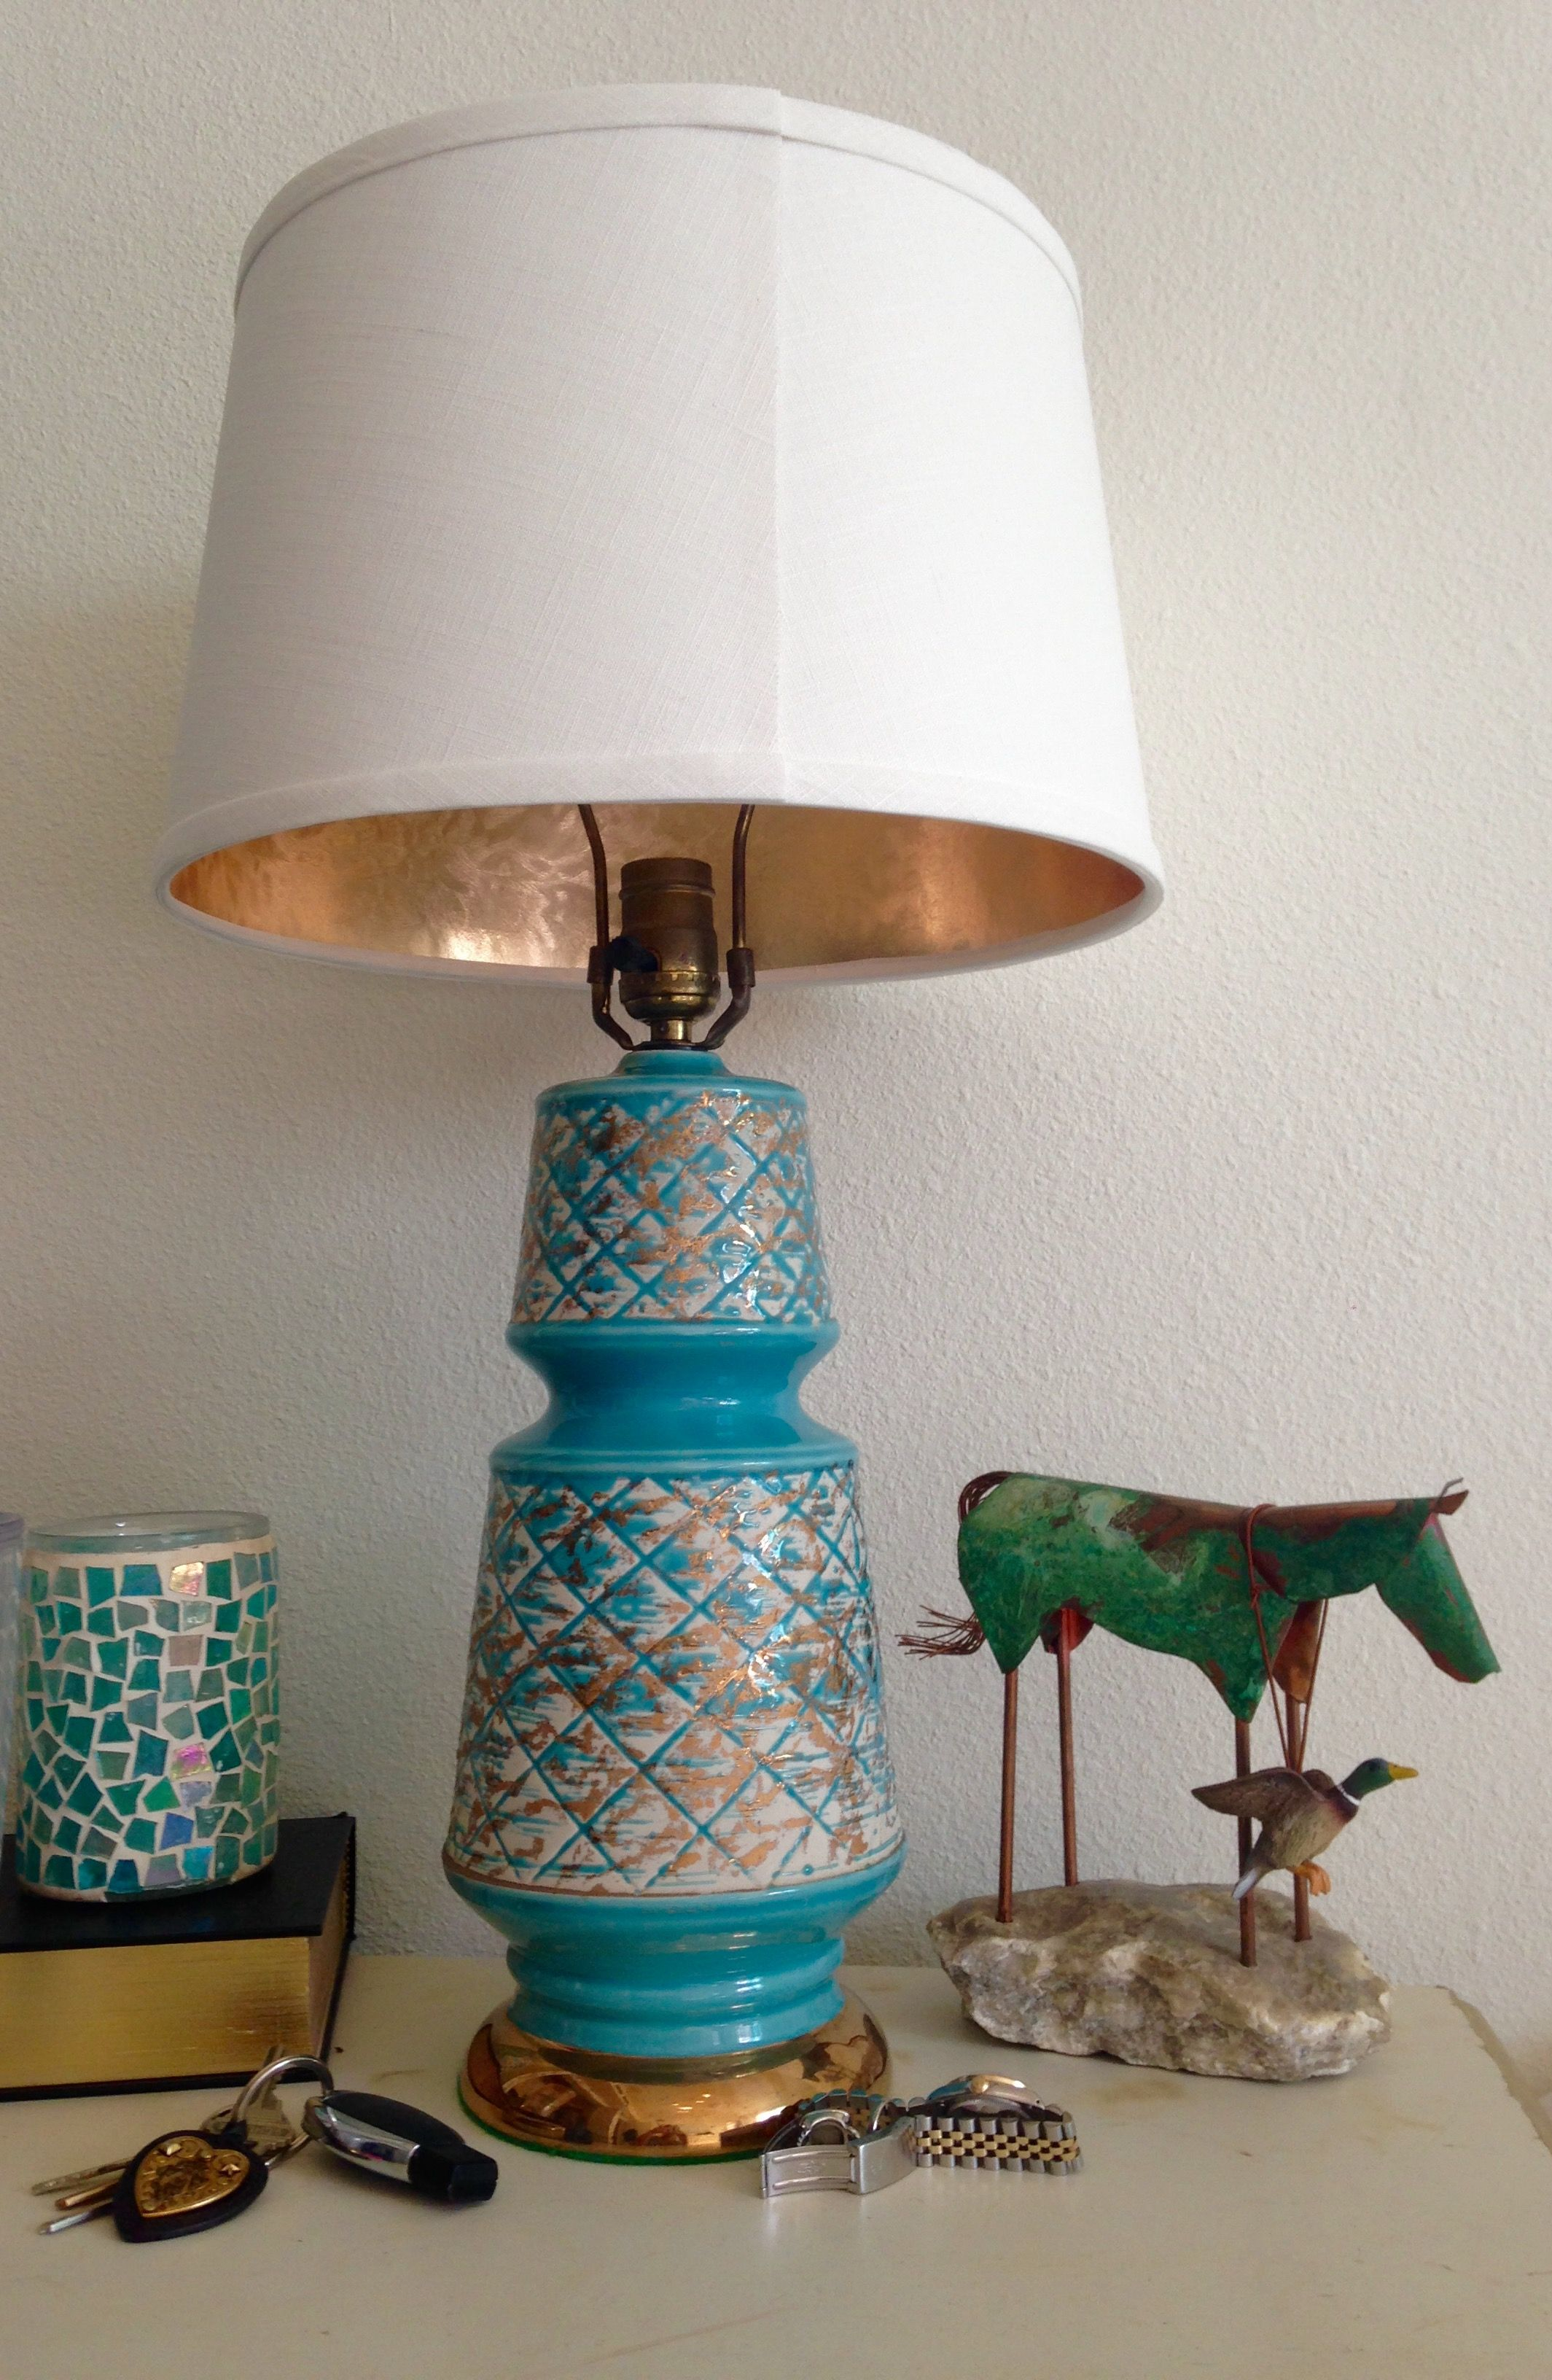 Redone antique brass lamps. New shades with gold lining.